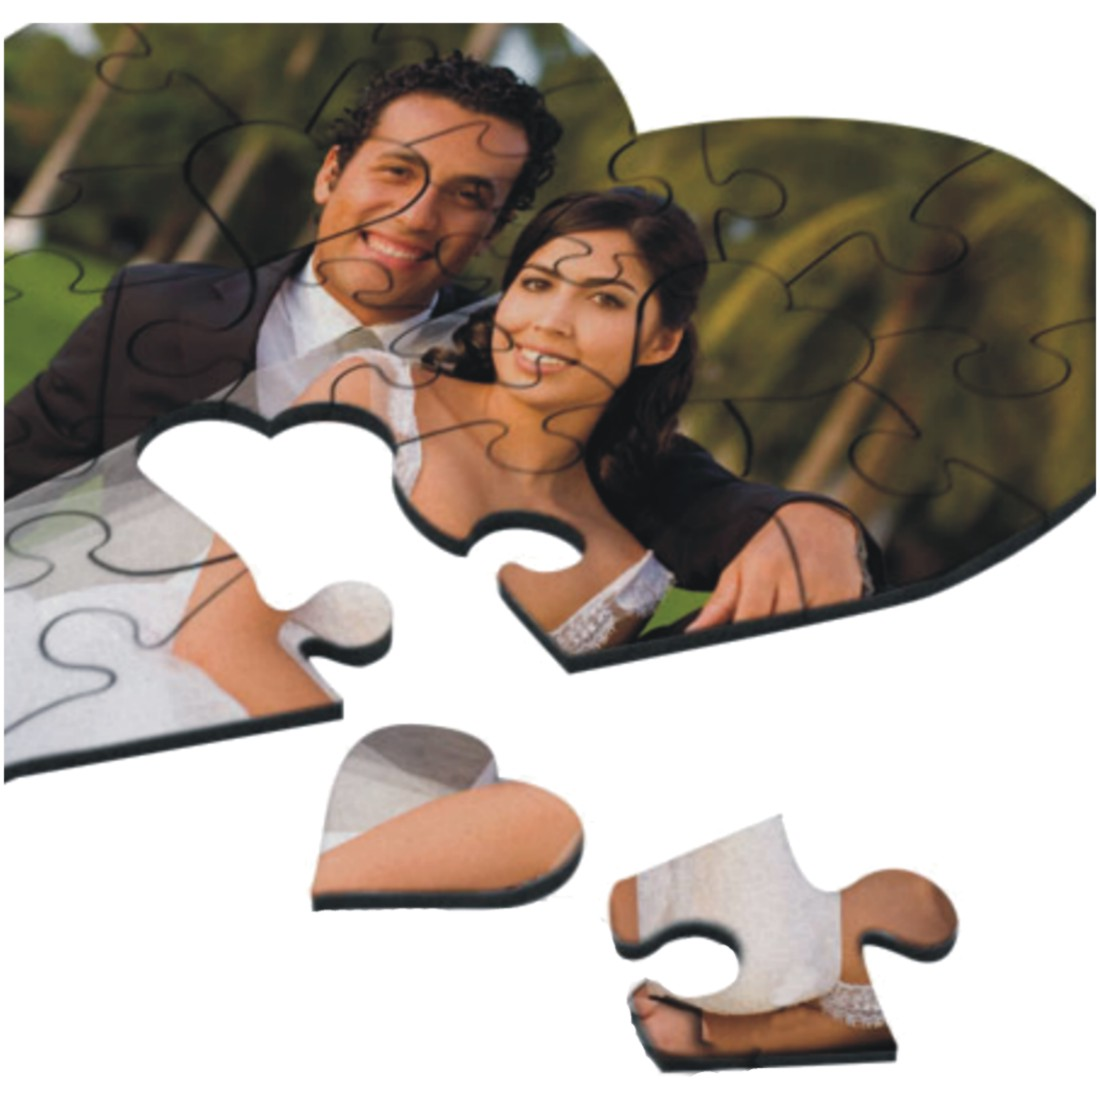 Personalized live laugh love valentine jigsaw puzzle by lafaloons